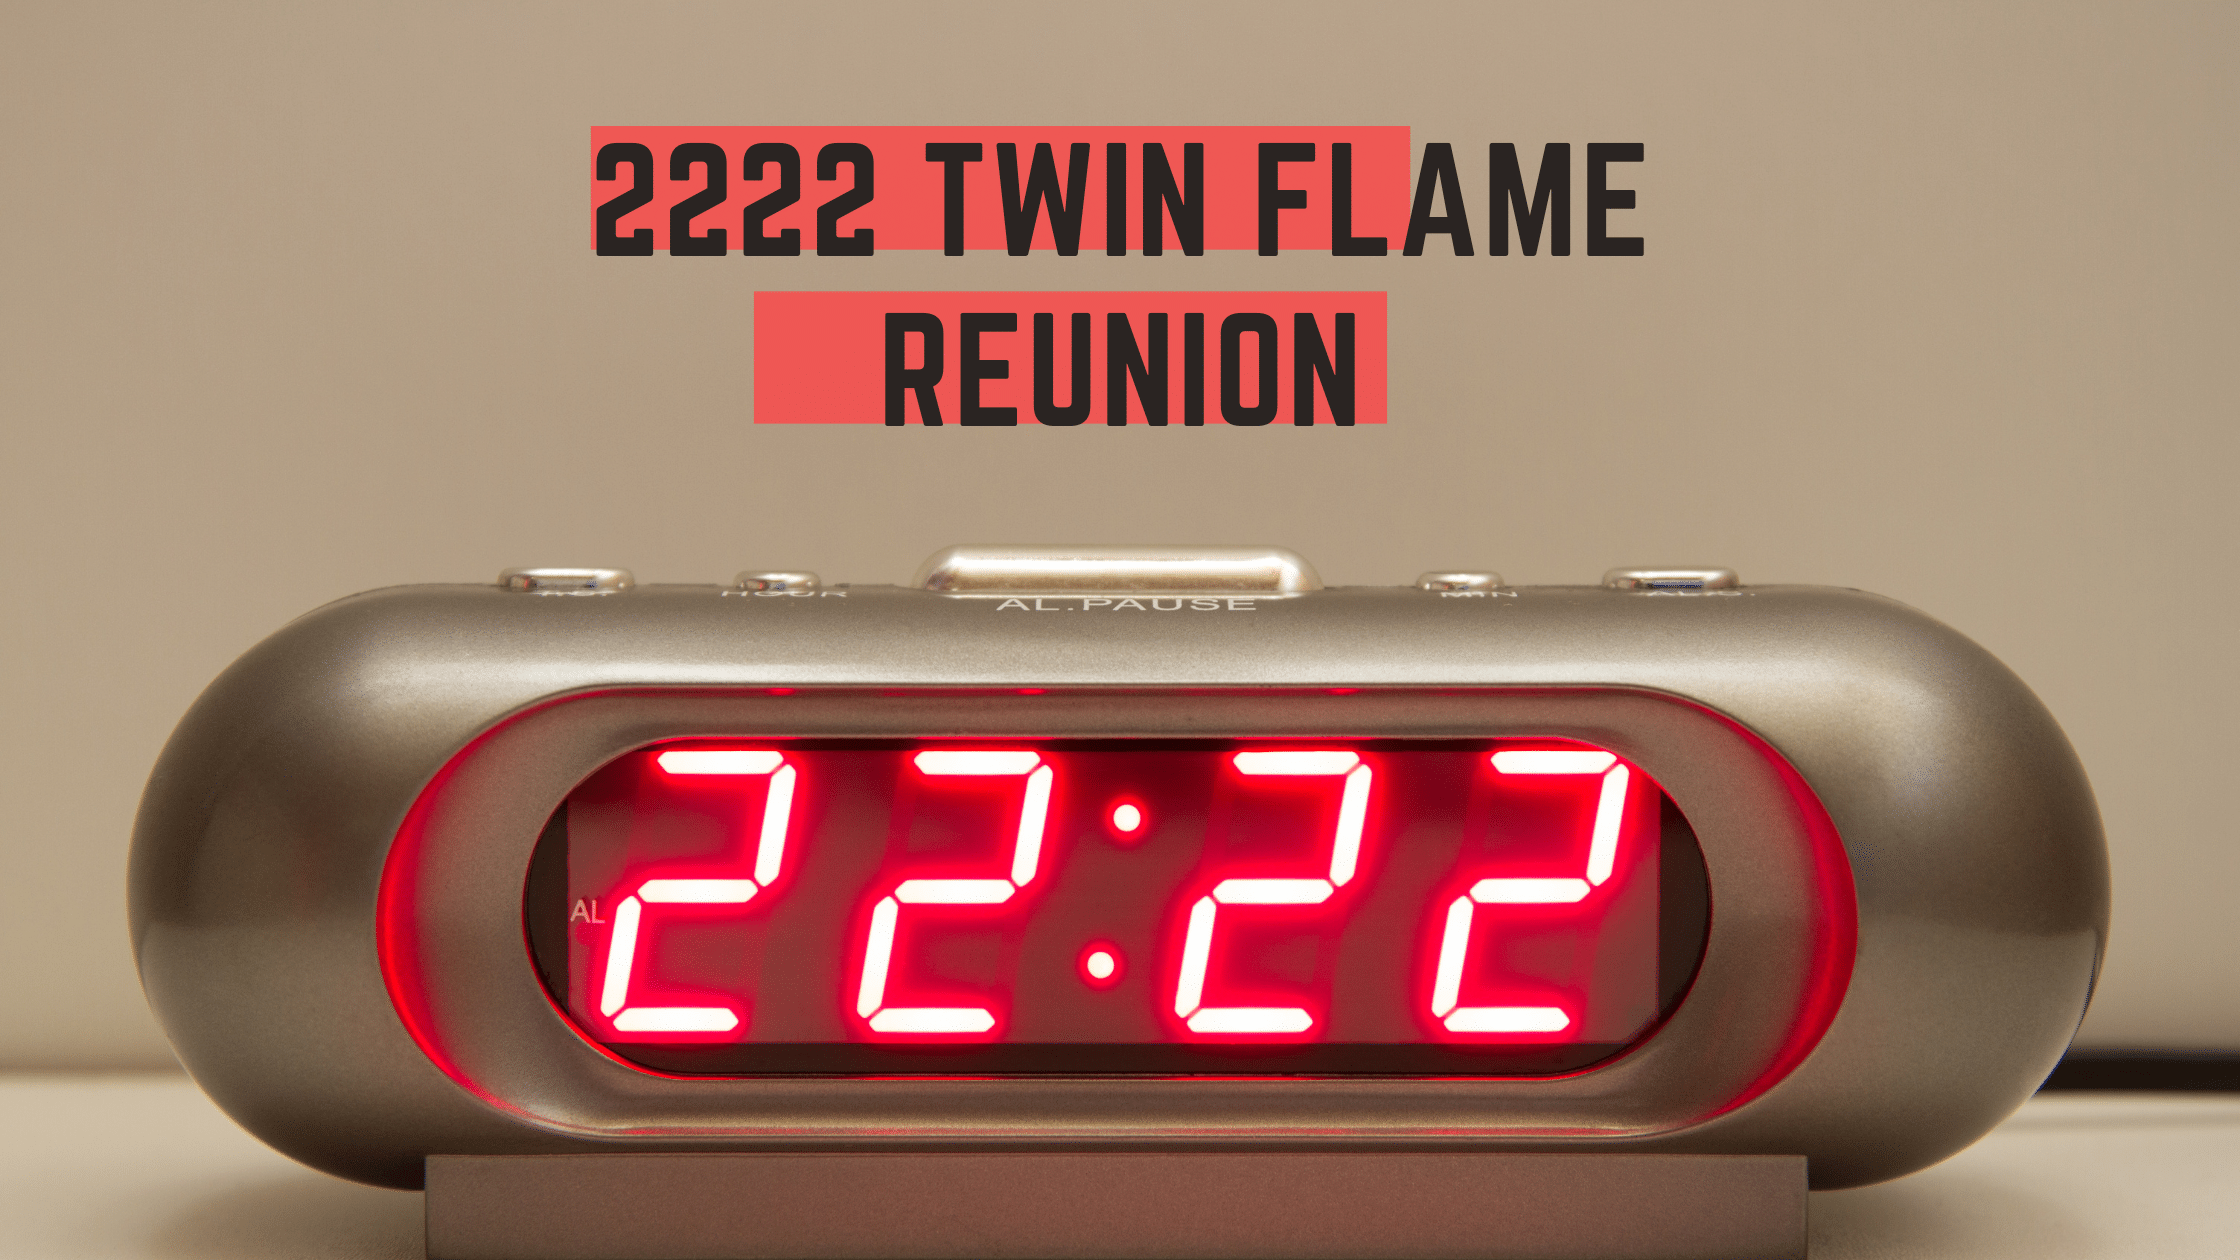 2222 twin flame reunion